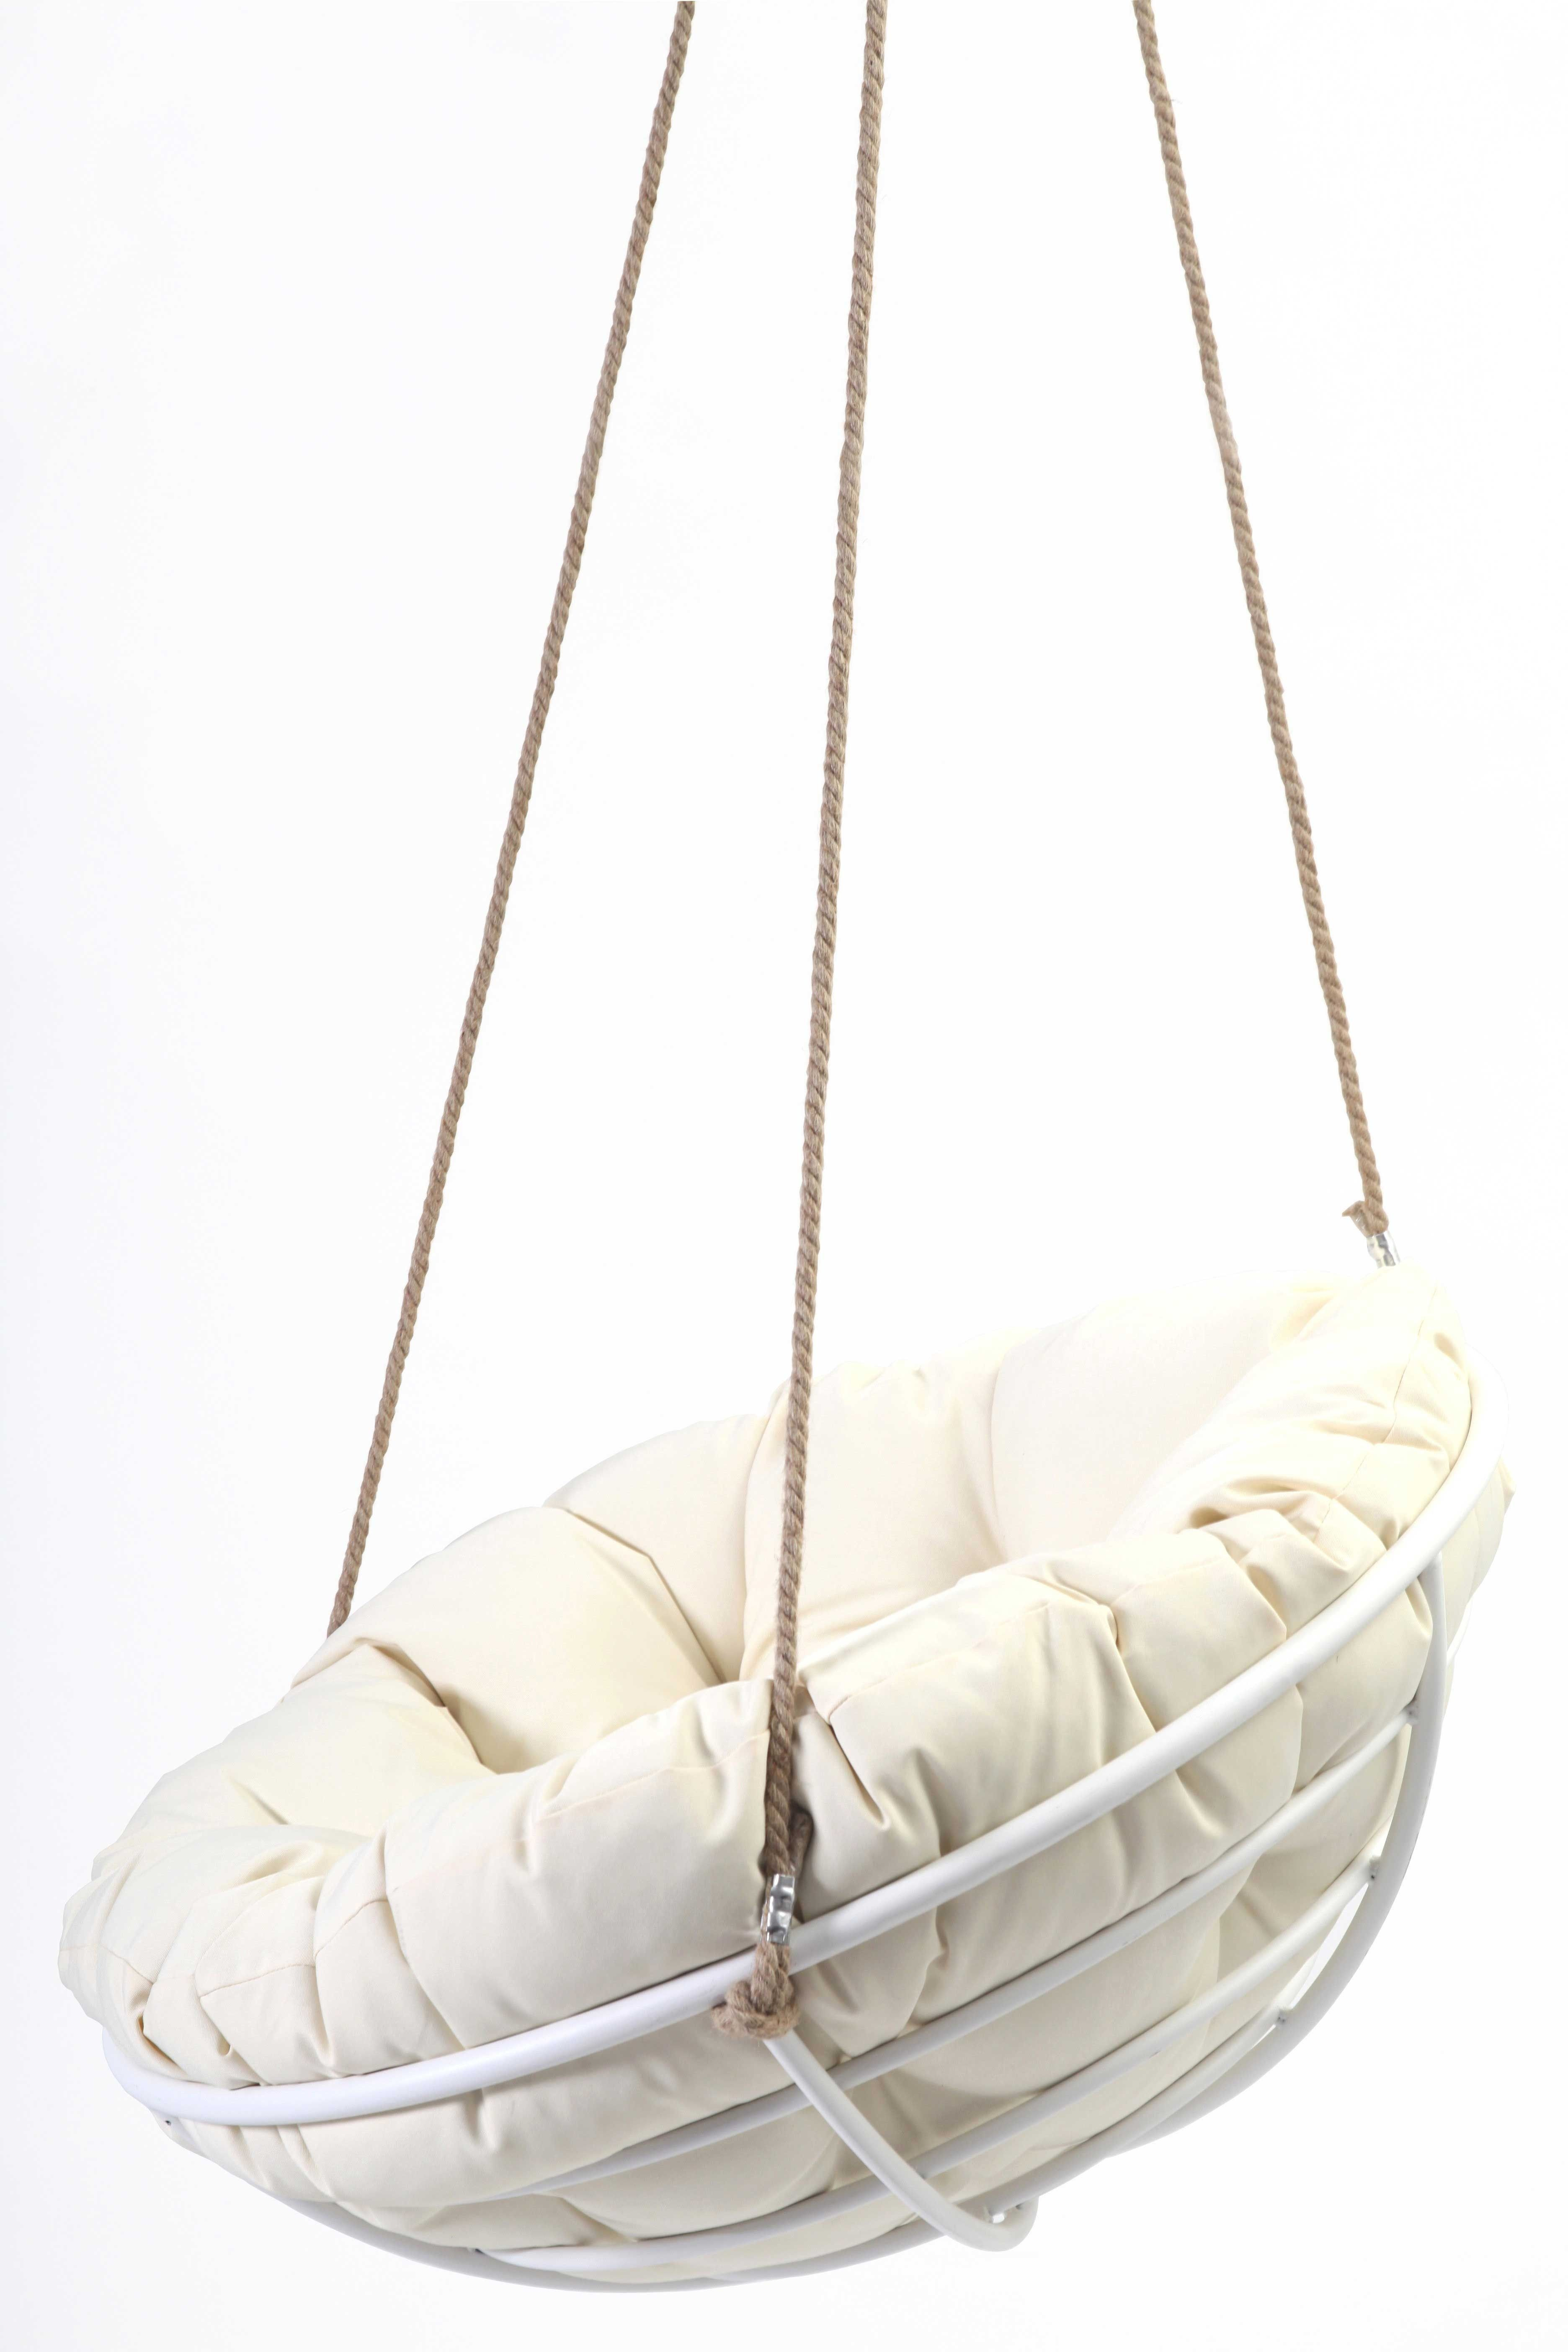 Hanging Papasan Chair Hanging Papasan Chair Hanging Chair Indoor Bowl Chair